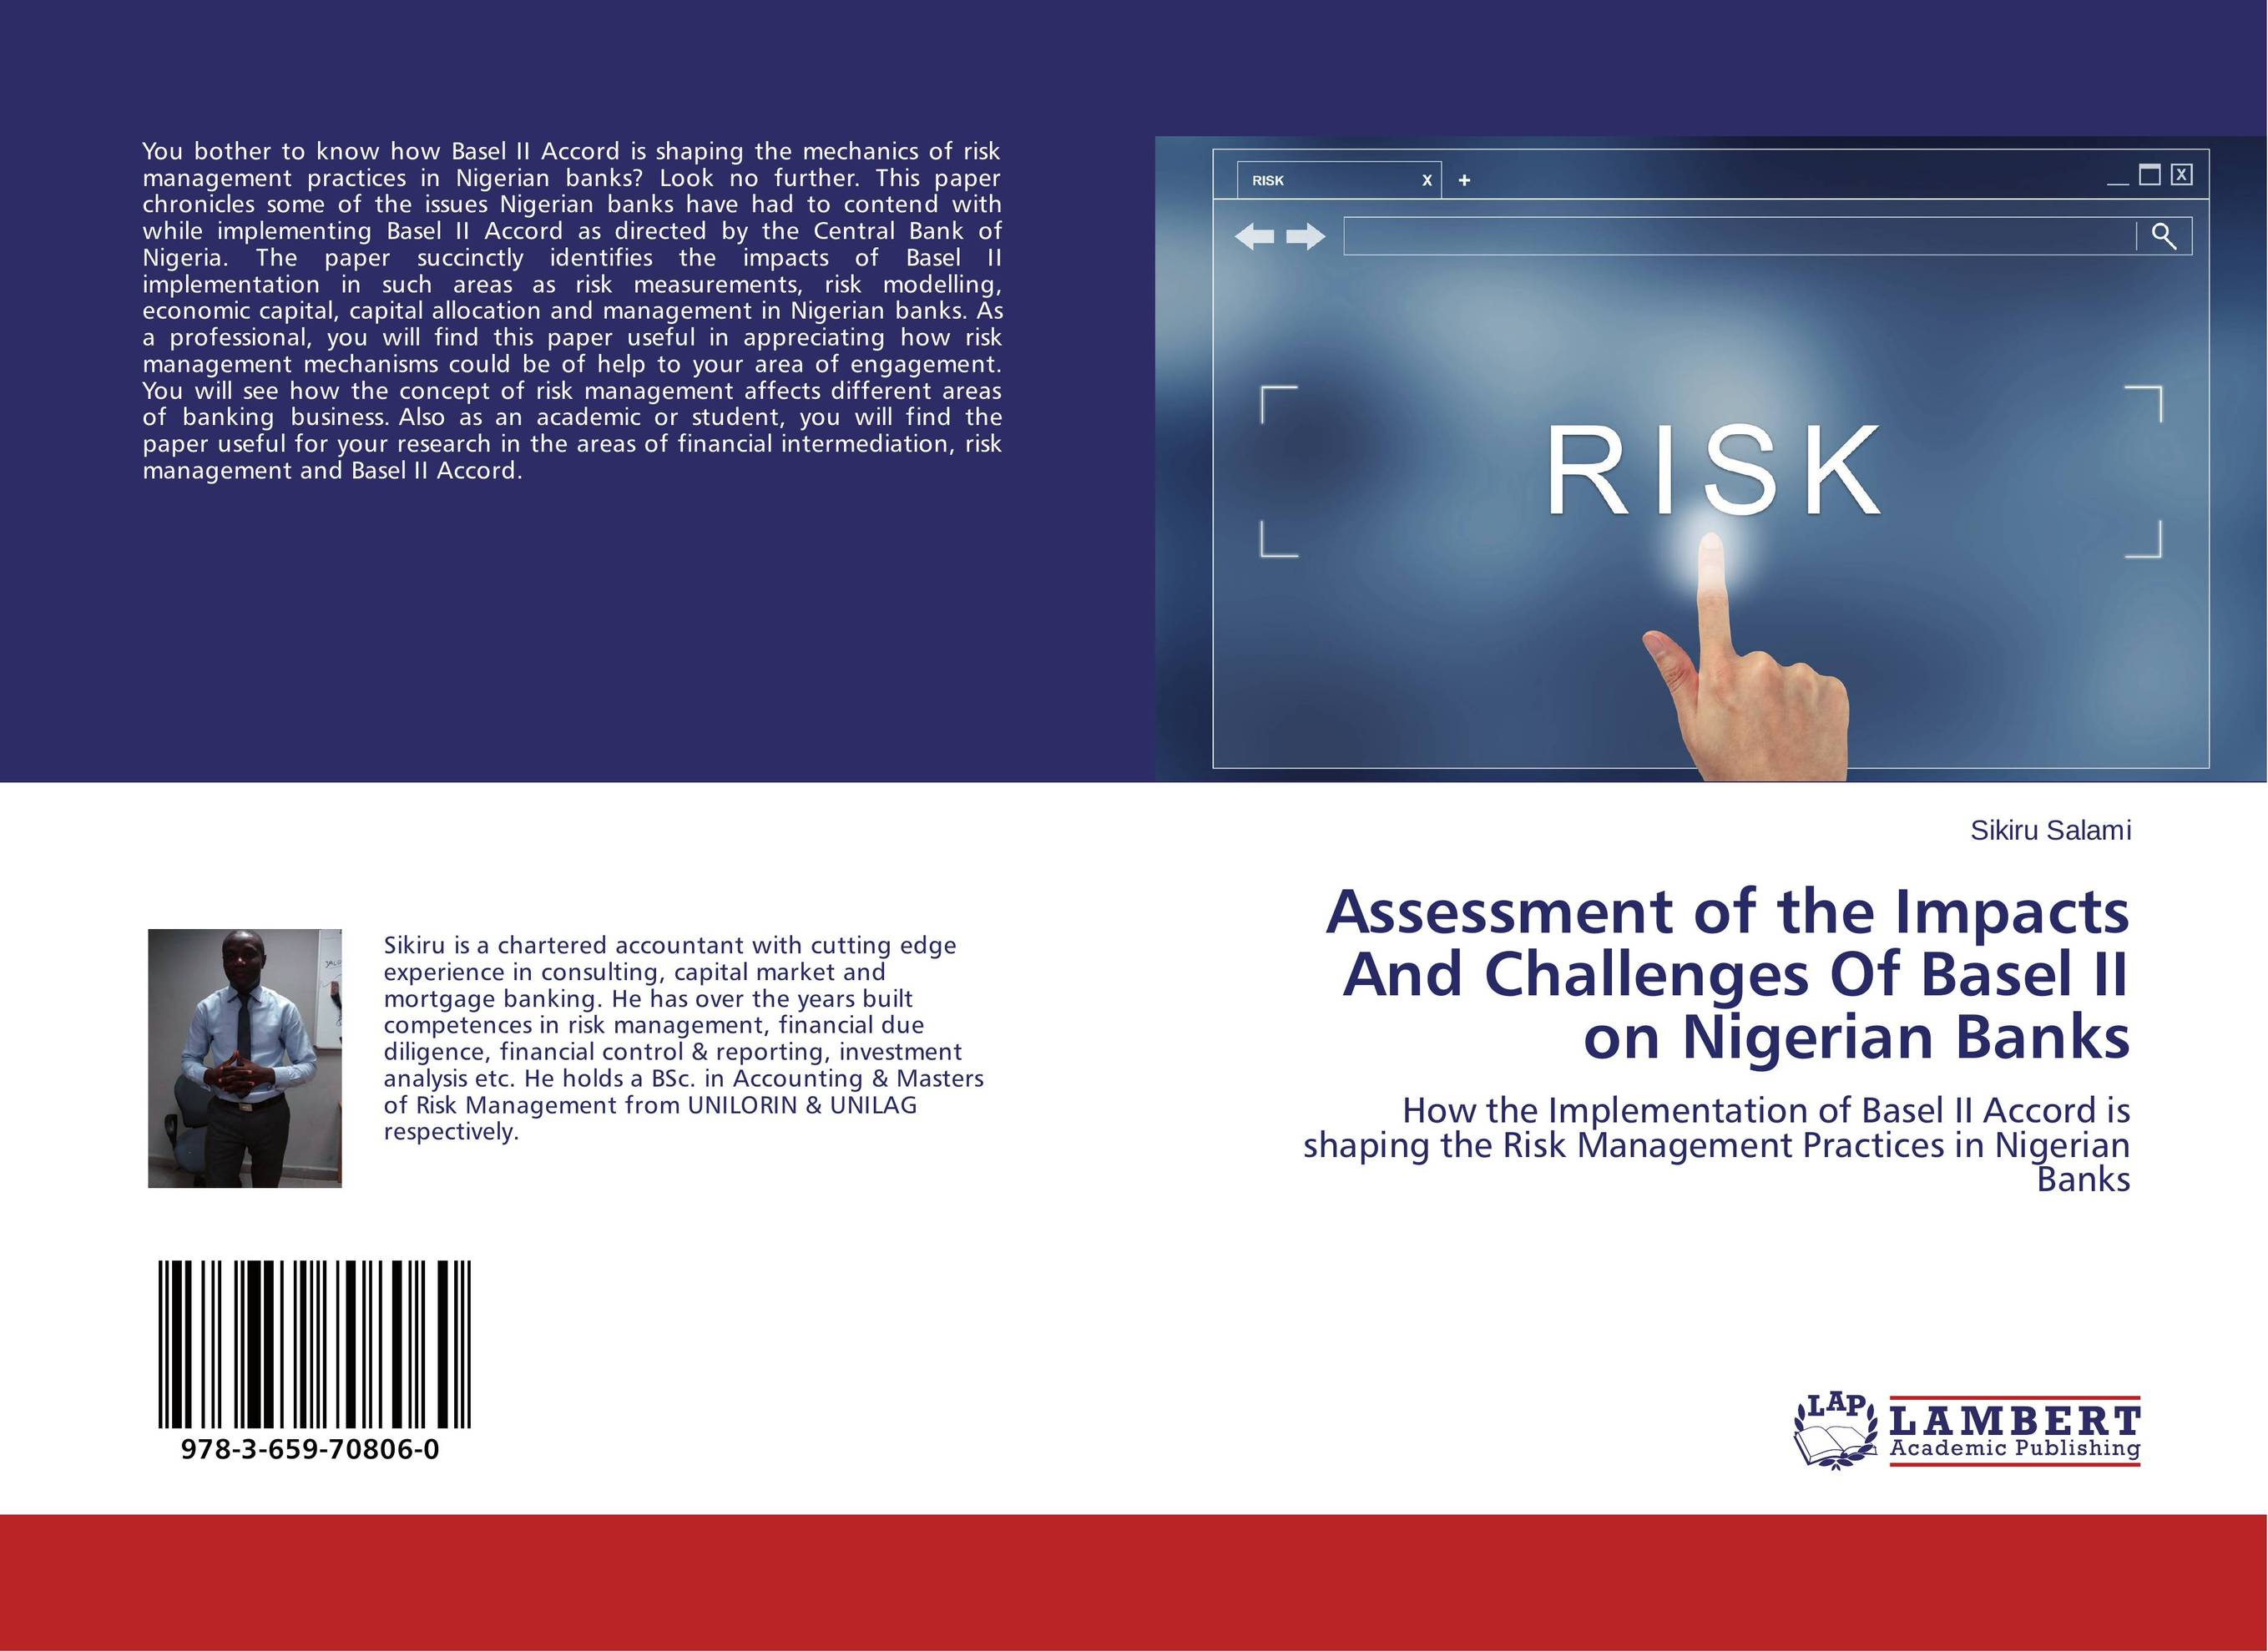 Assessment of the Impacts And Challenges Of Basel II on Nigerian Banks capital structure and risk dynamics among banks